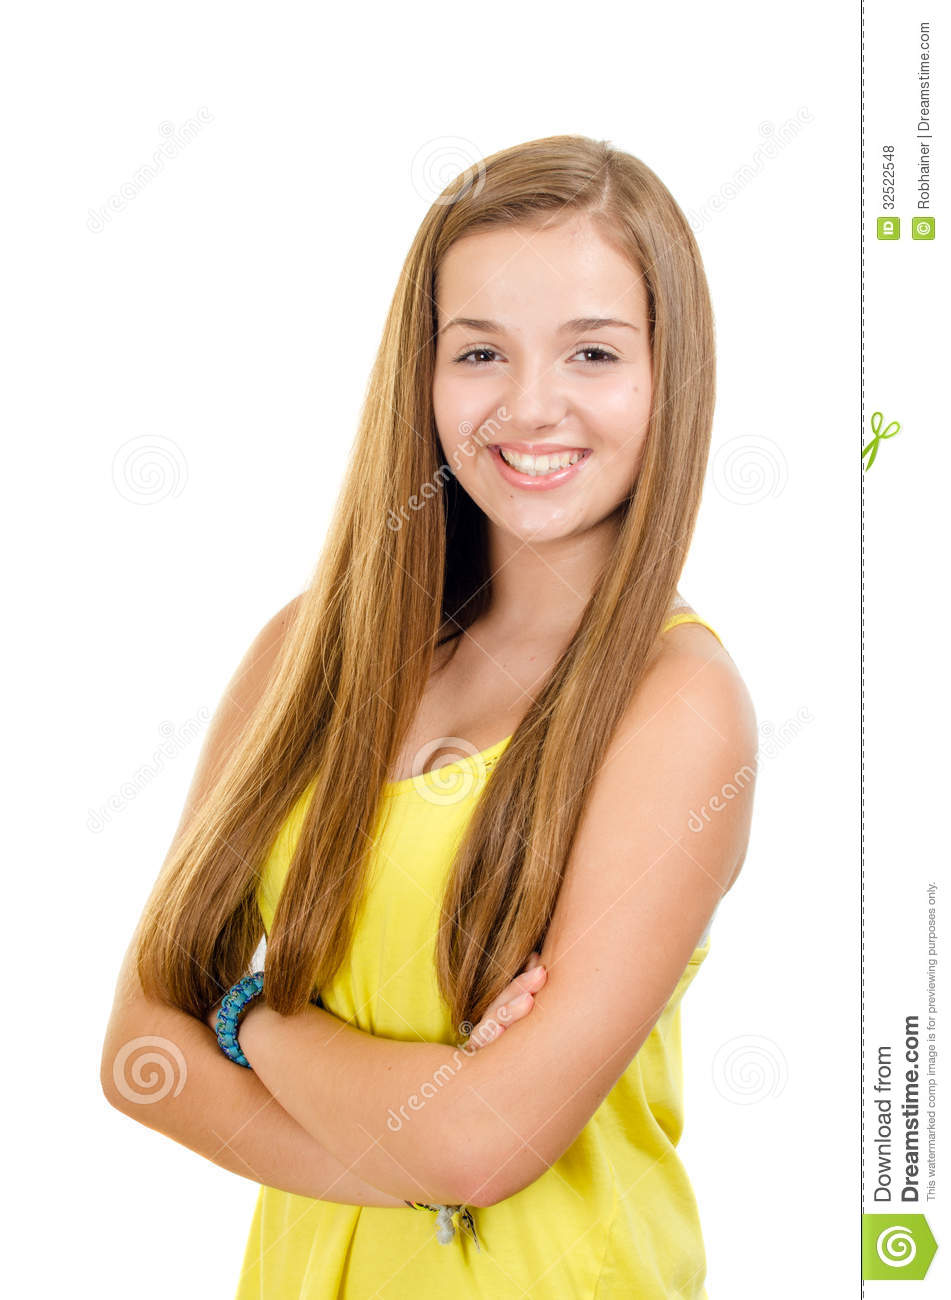 Portrait Of Pretty Teen Girl Smiling Royalty Free Stock